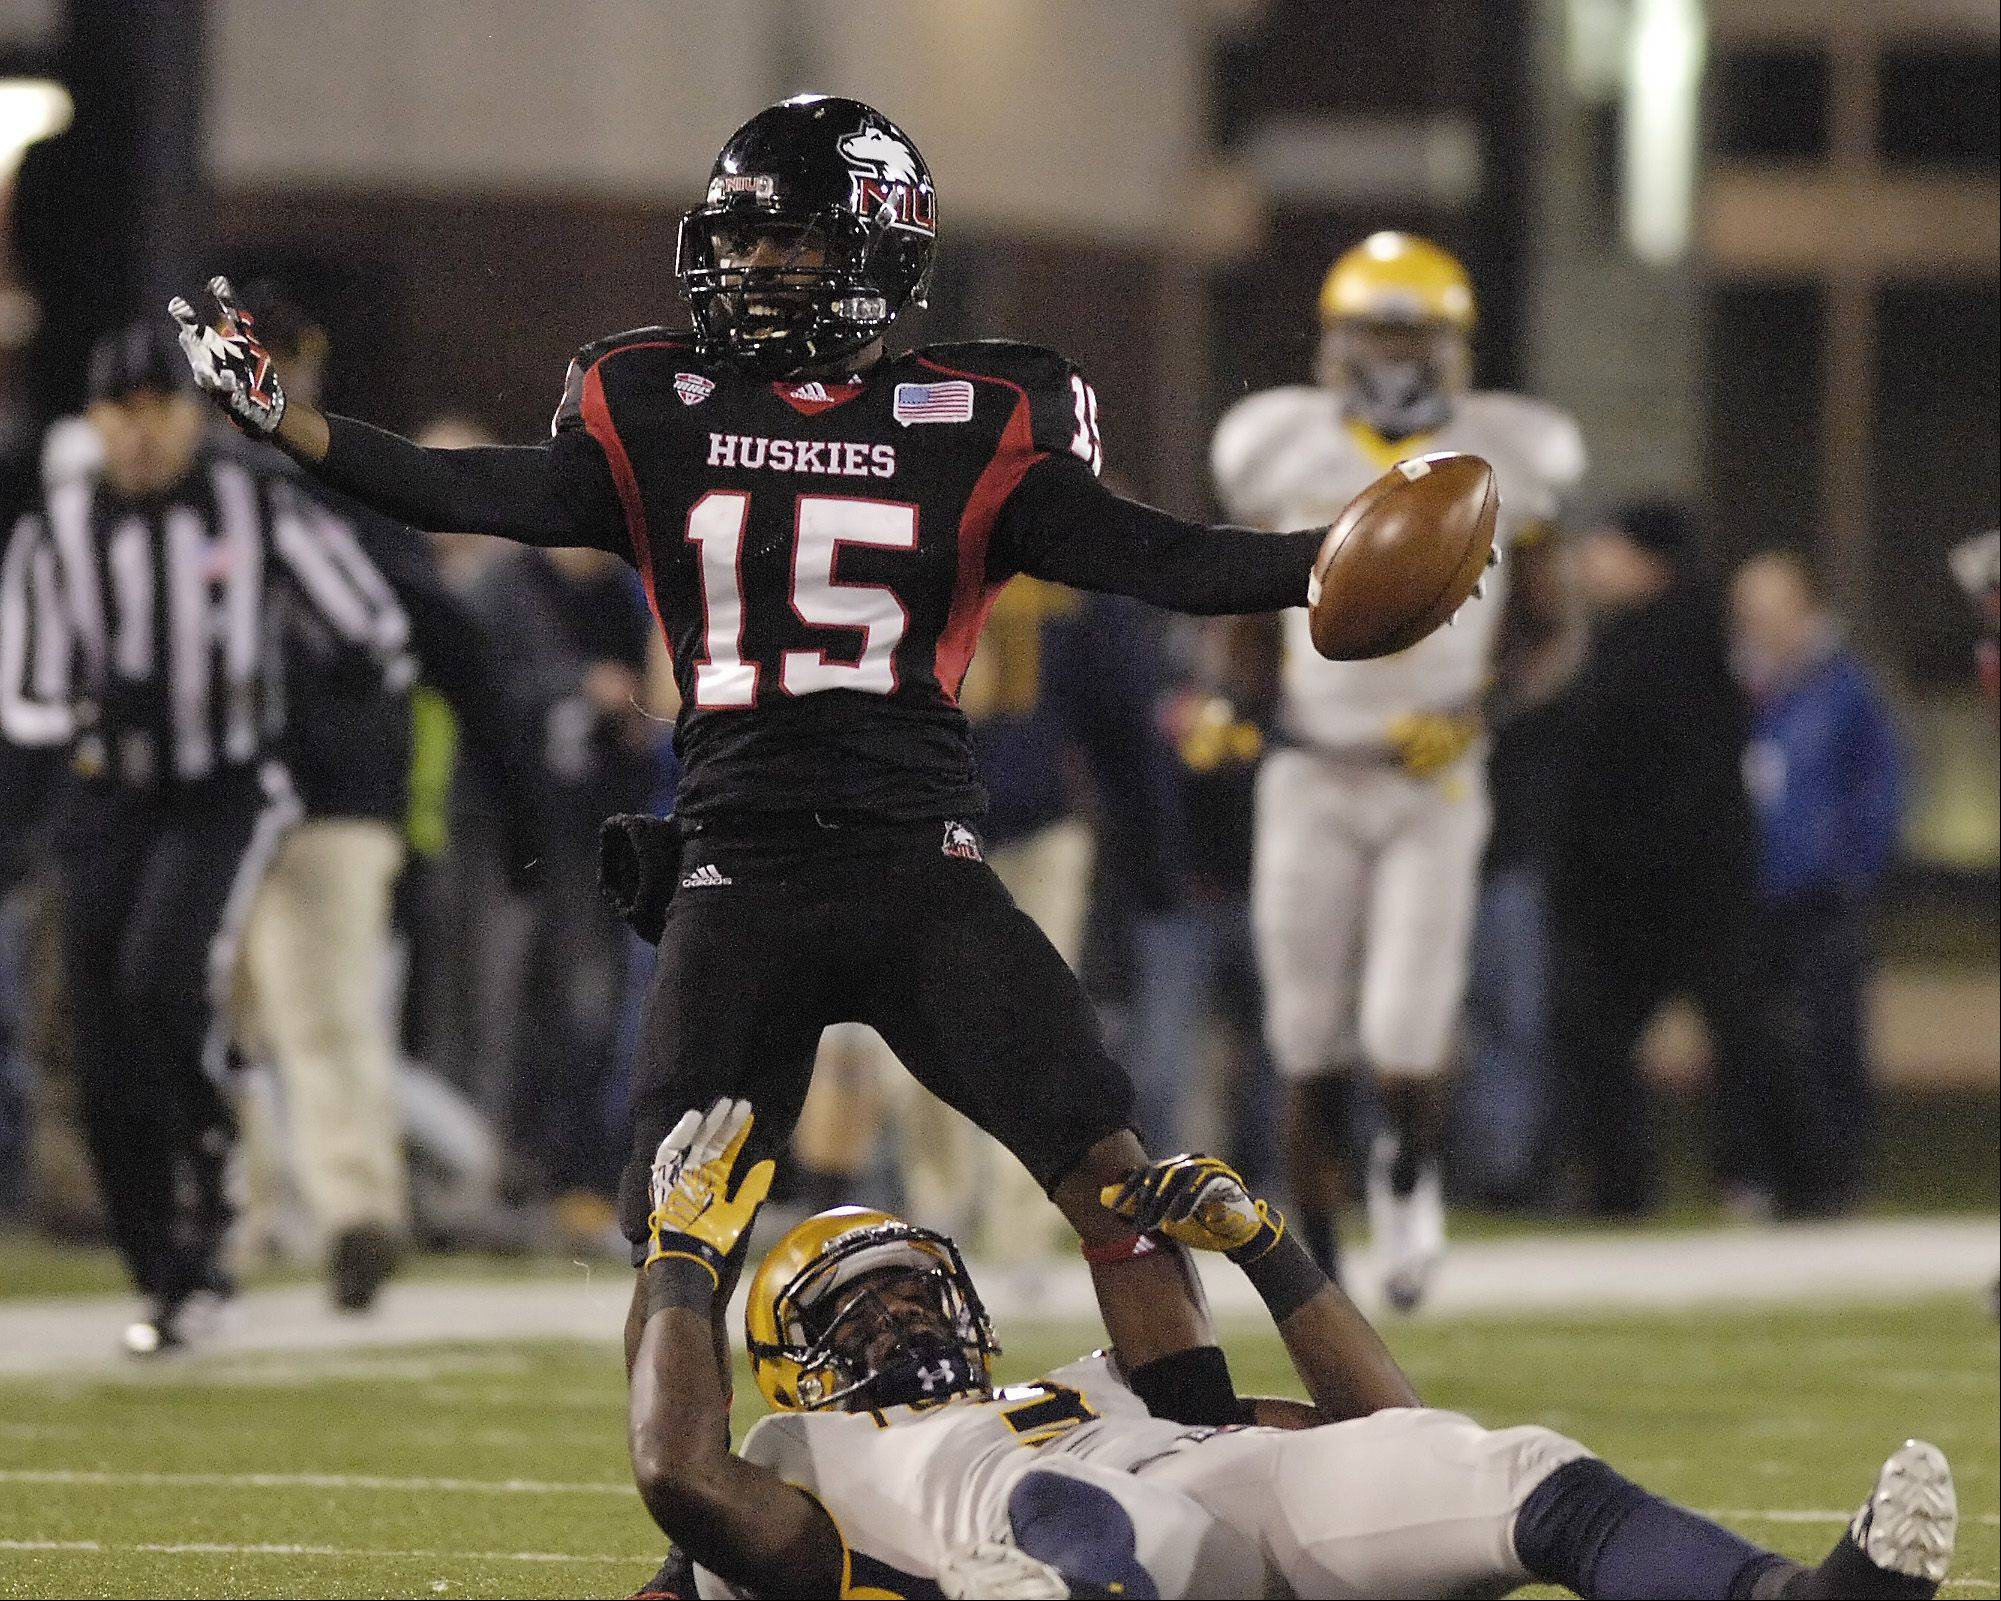 Mark Black/mblack@dailyherald.com Jimmie Ward of Northern Illinois University celebrates a second quarter interception against the Toledo Rockets in Dekalb, Wednesday.